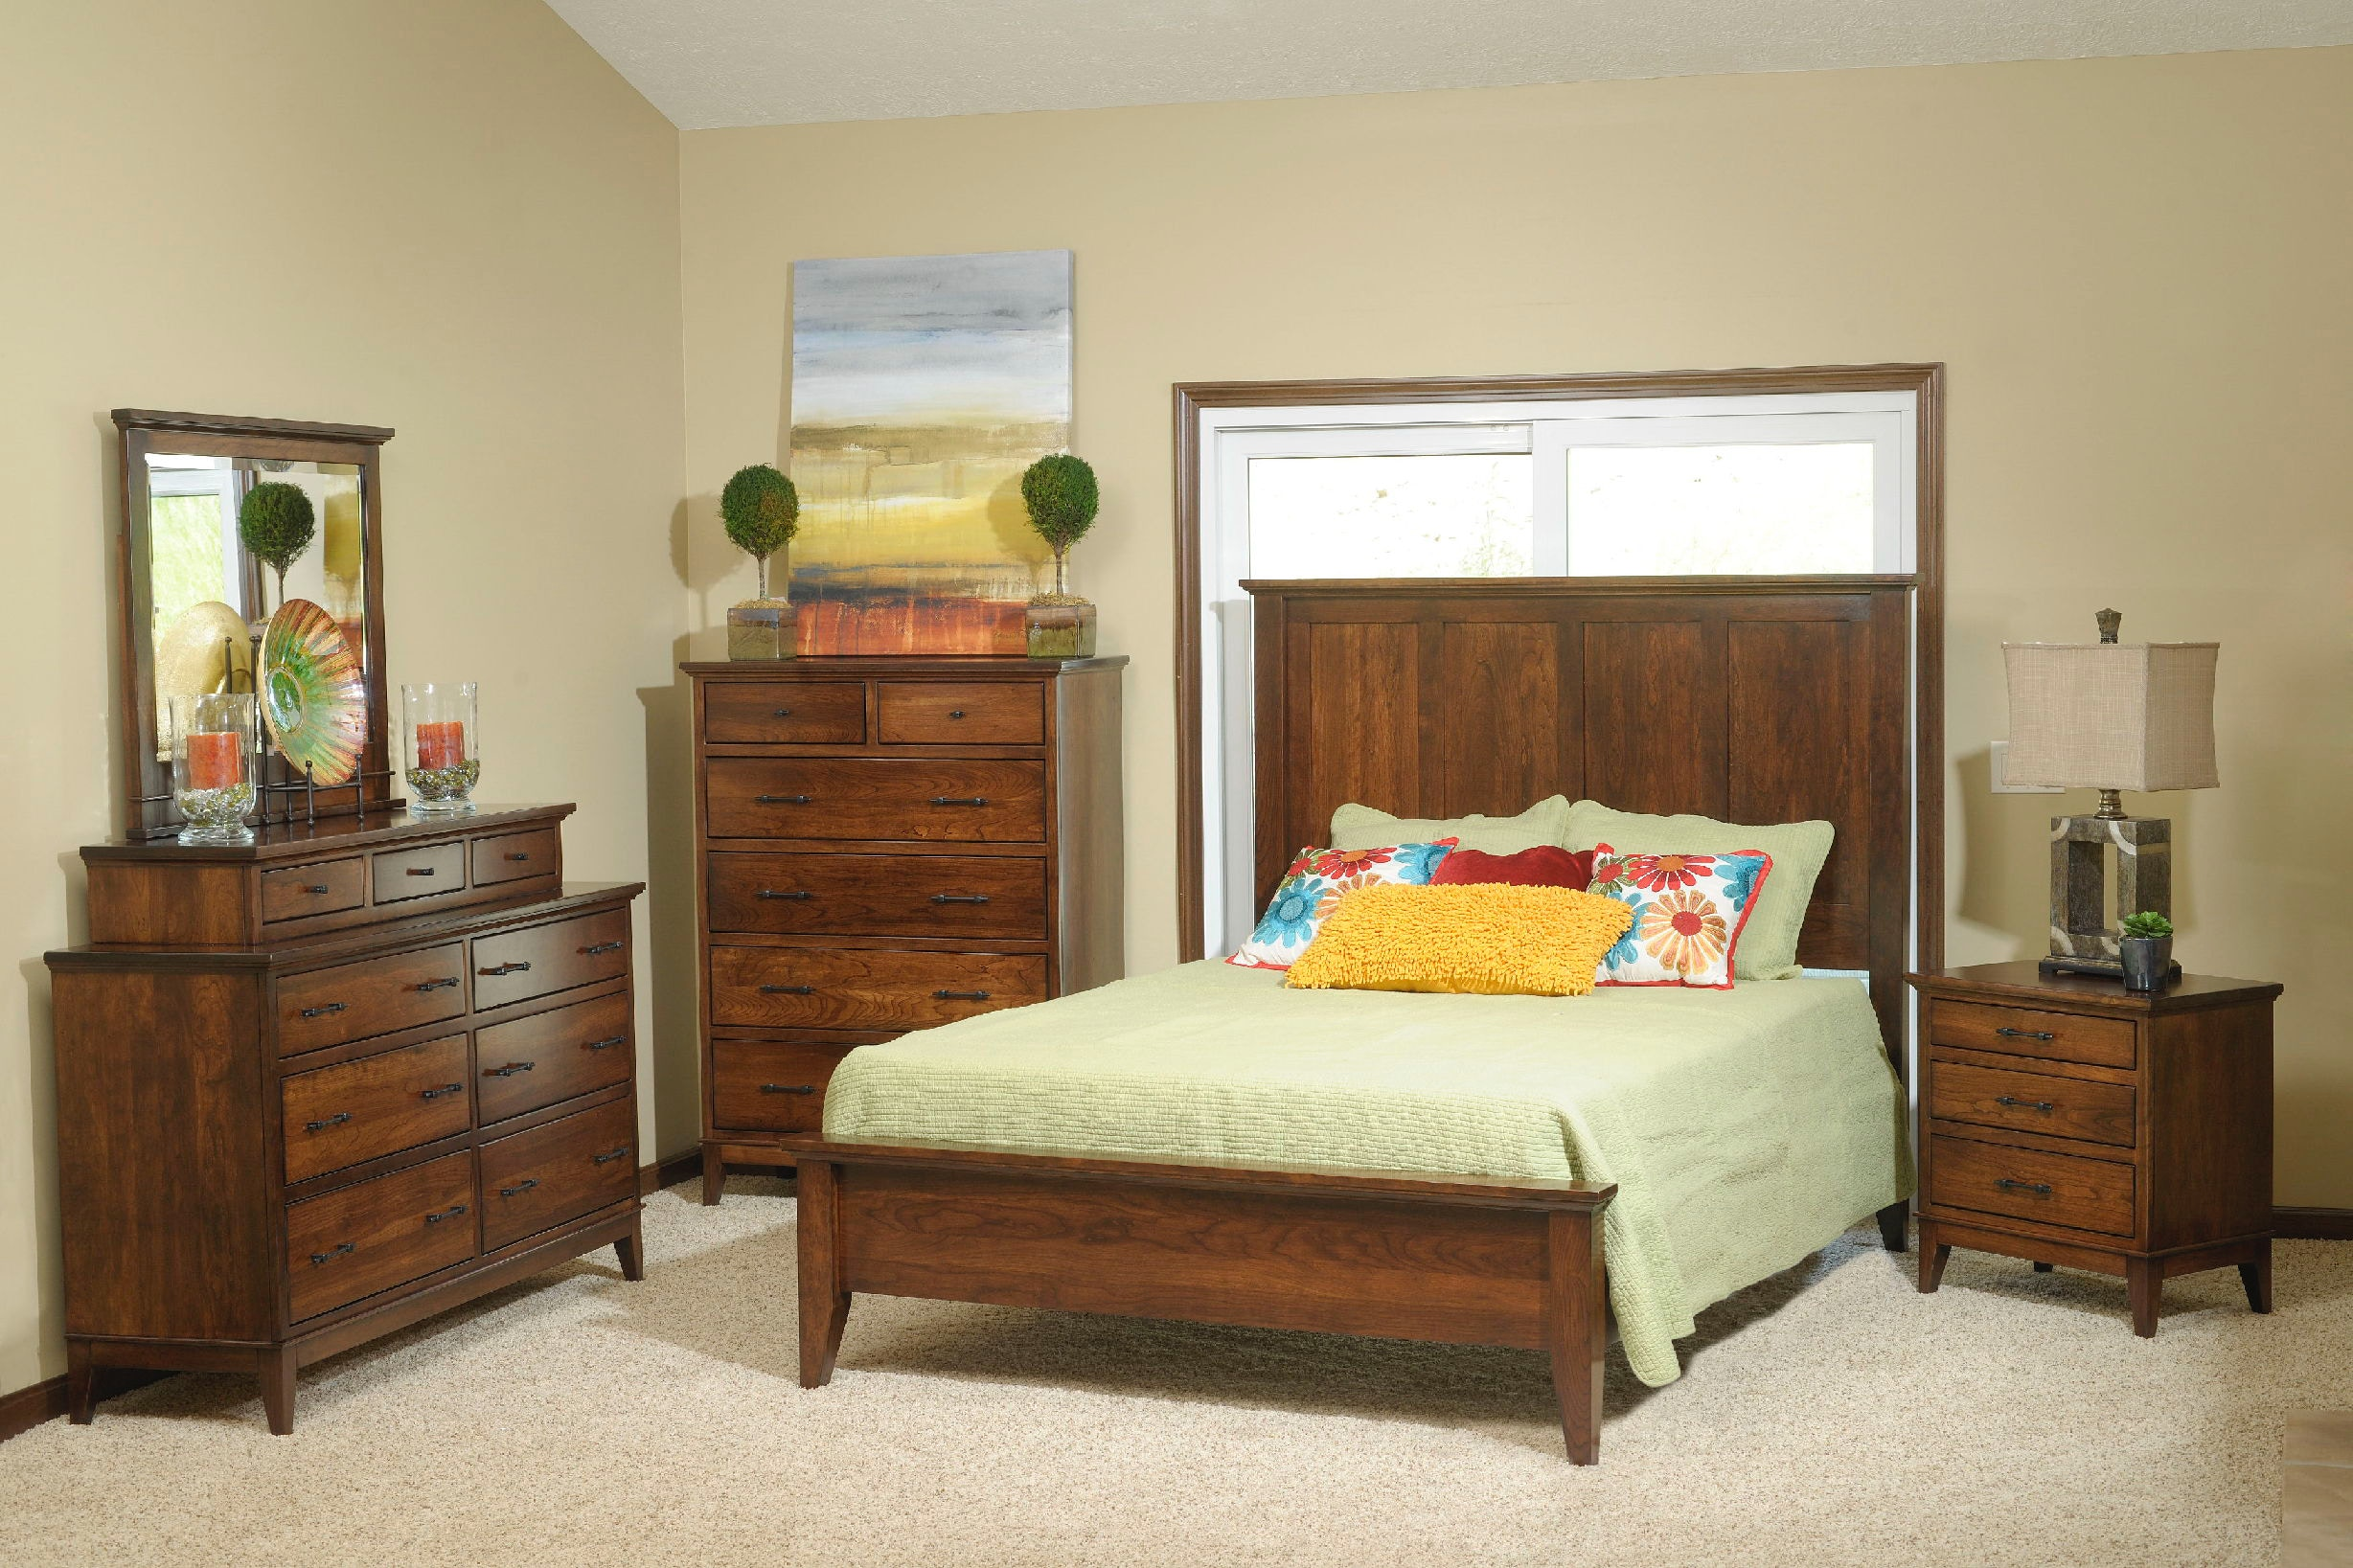 Yutzy woodworking bedroom cortland panel bed 1909 moores for Bedroom furniture limerick